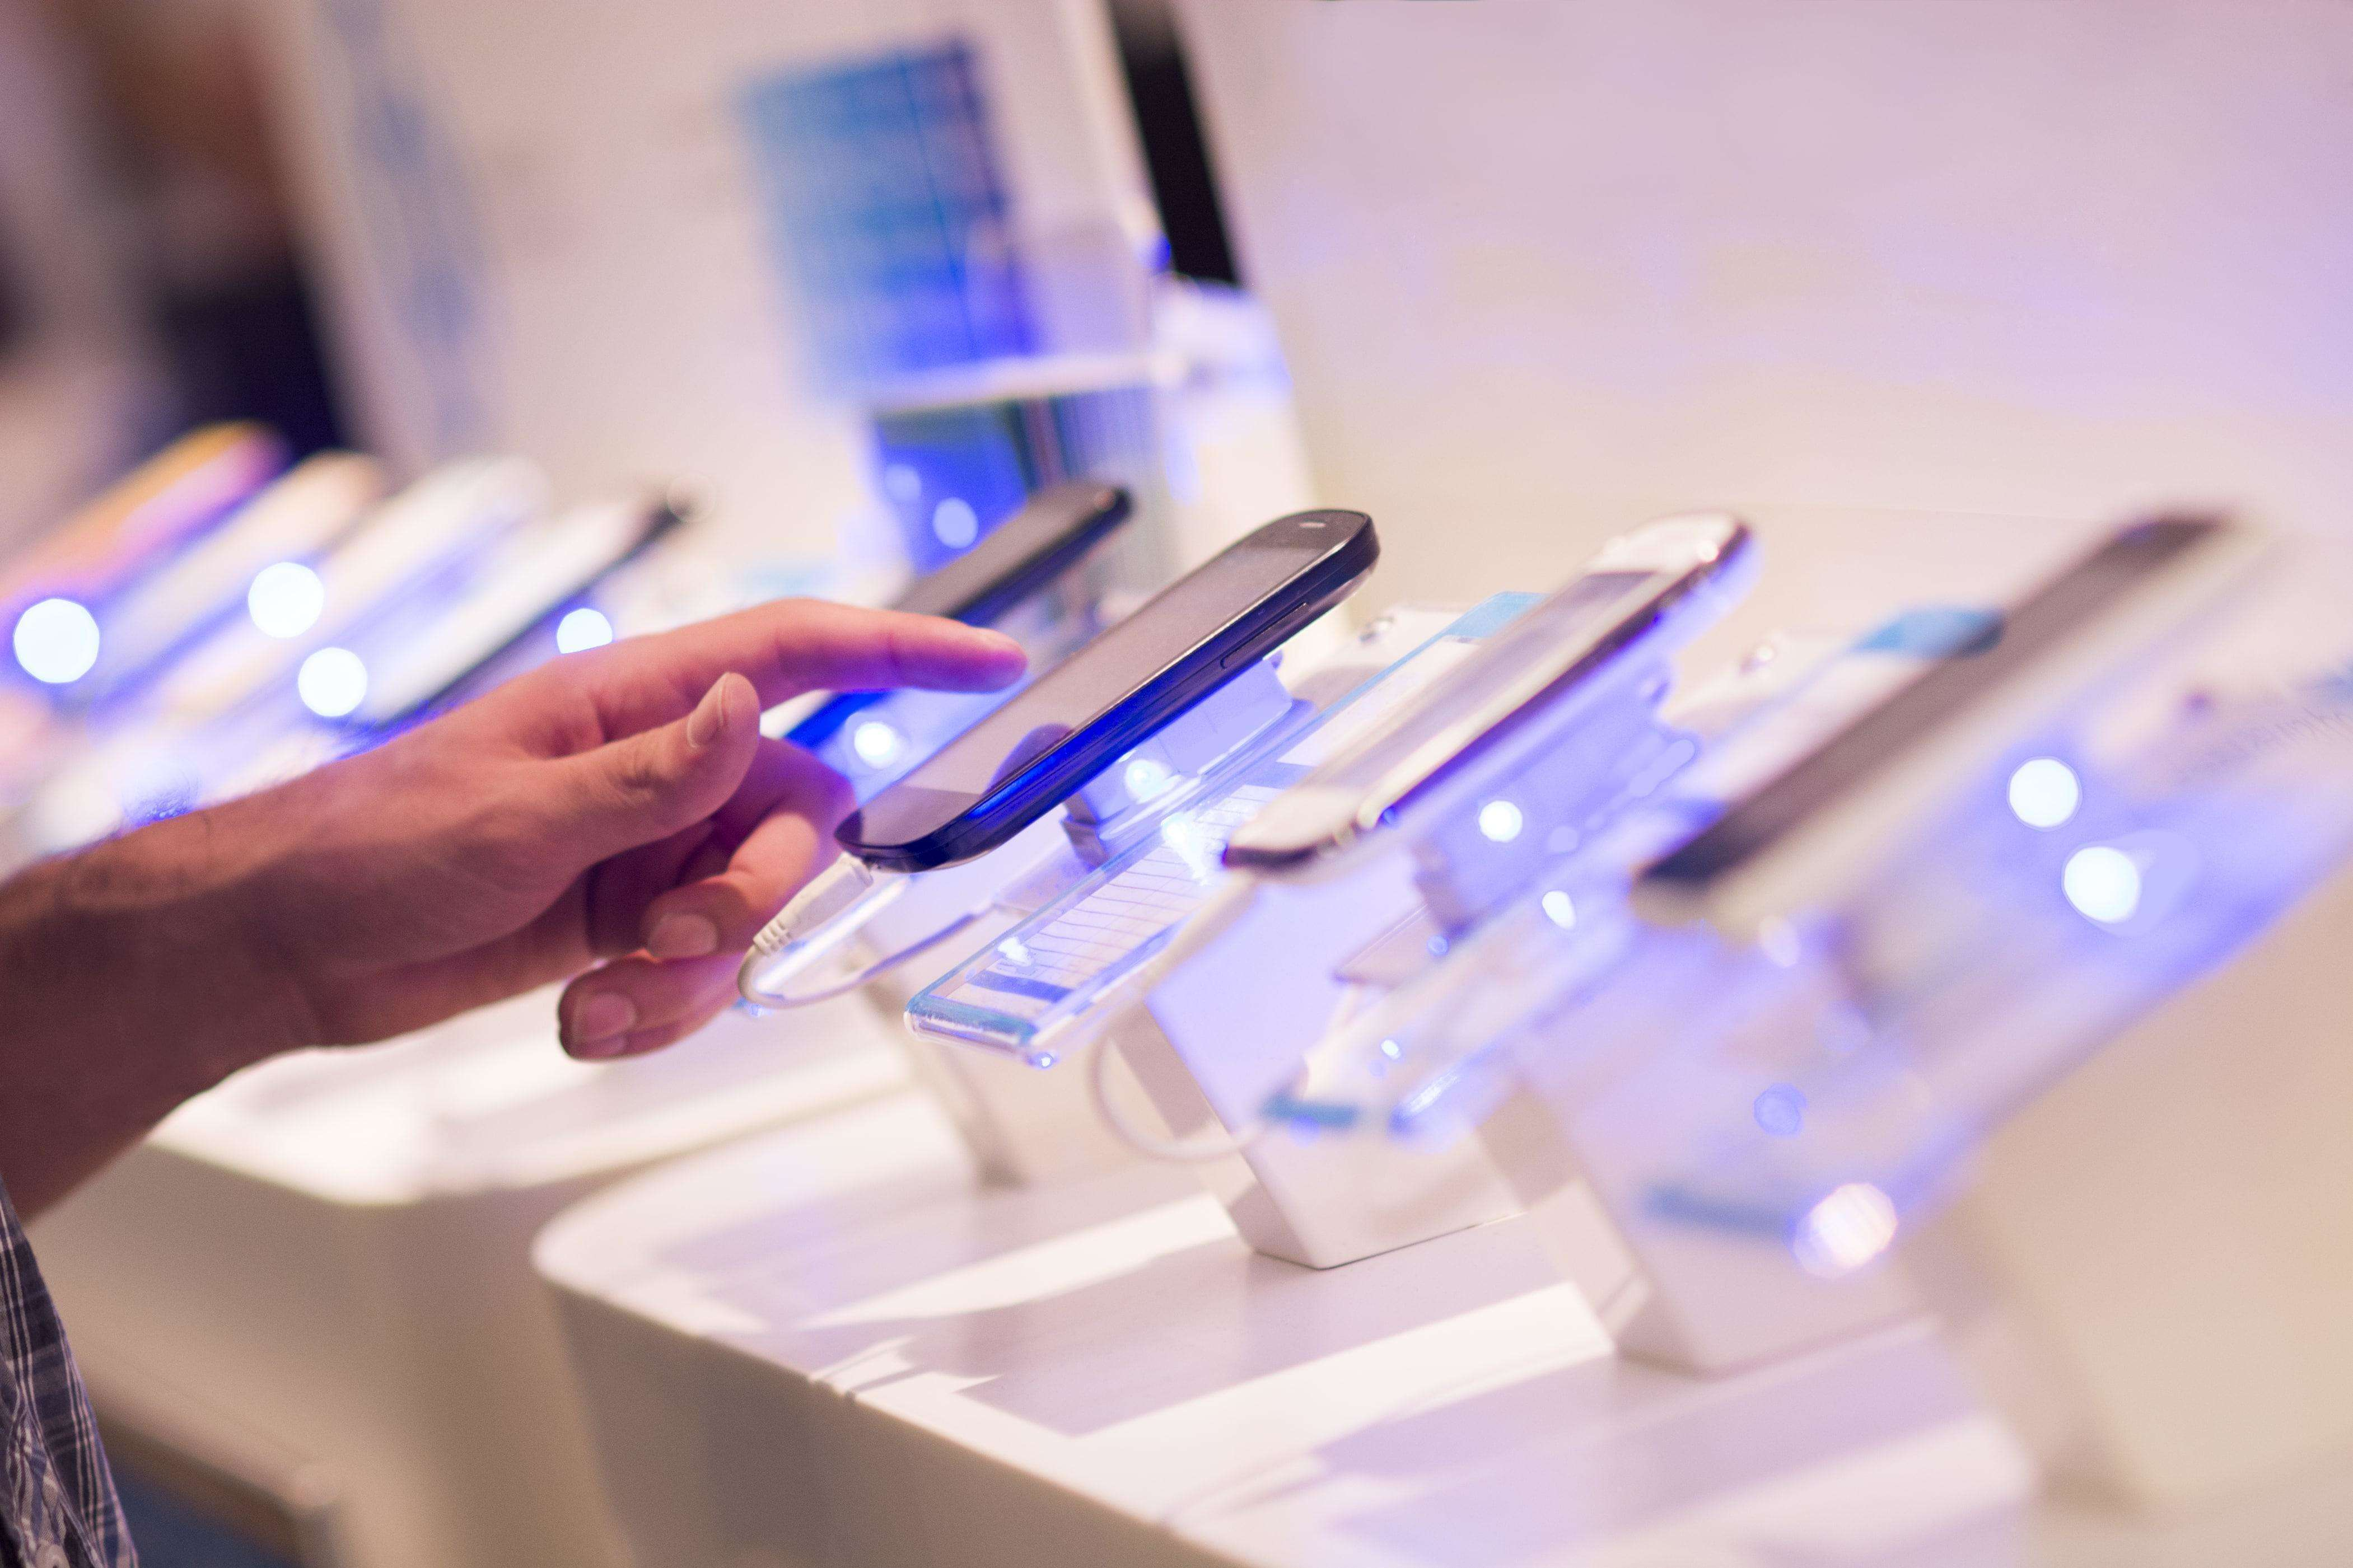 Smartphone launches likely to fall 15-20% this festive season